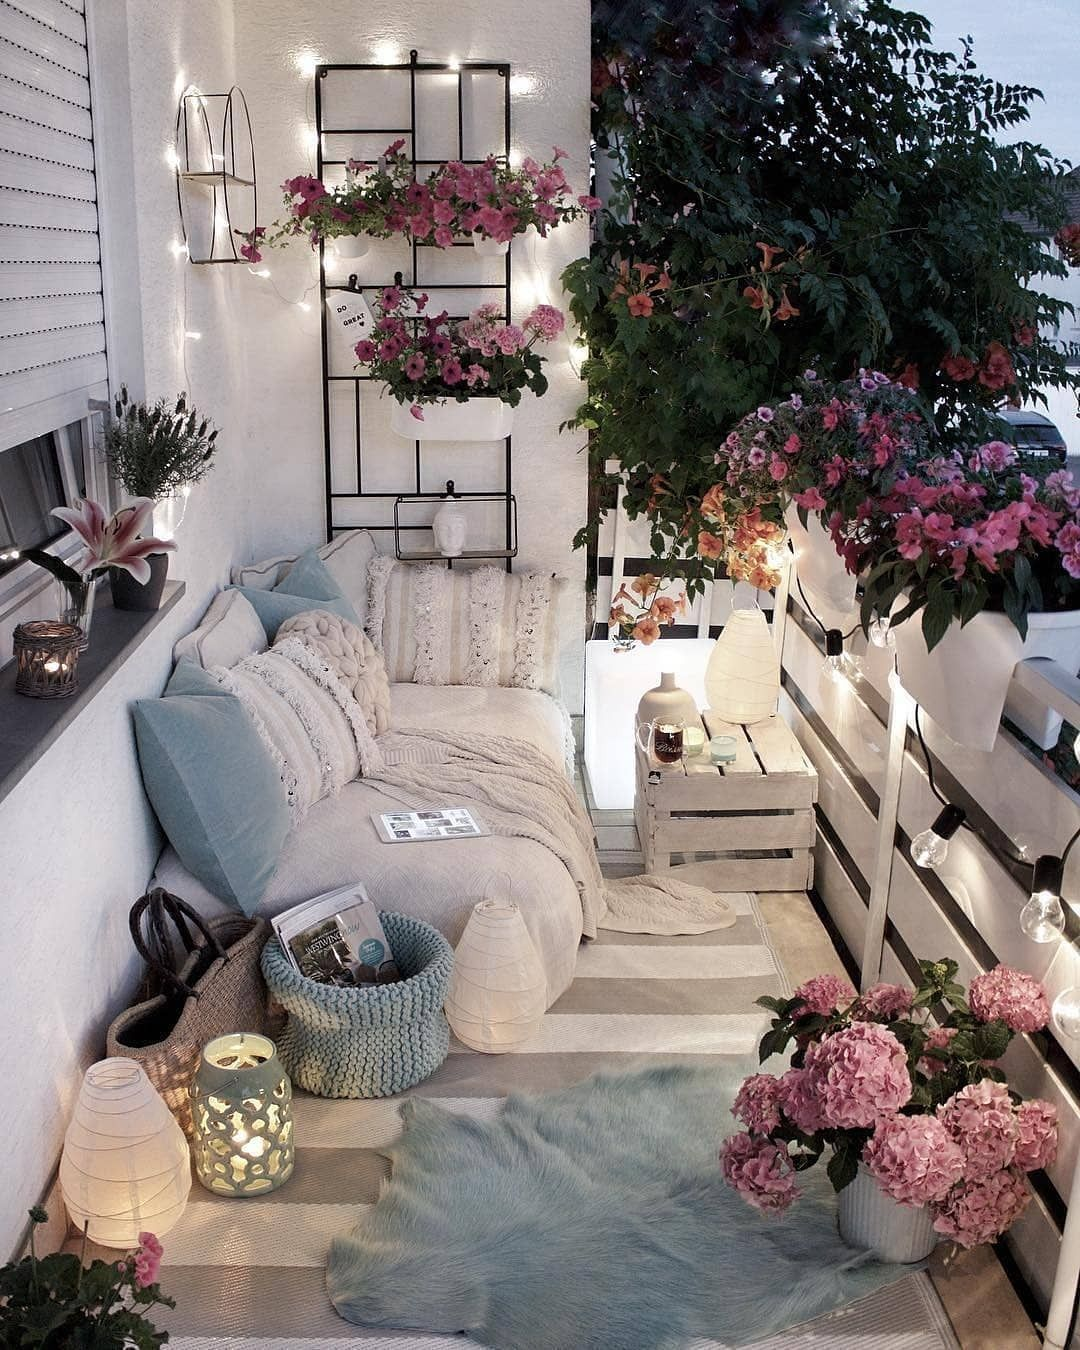 the best decorated small outdoor balconies on pinterest on diy home decor on a budget apartment ideas id=52139